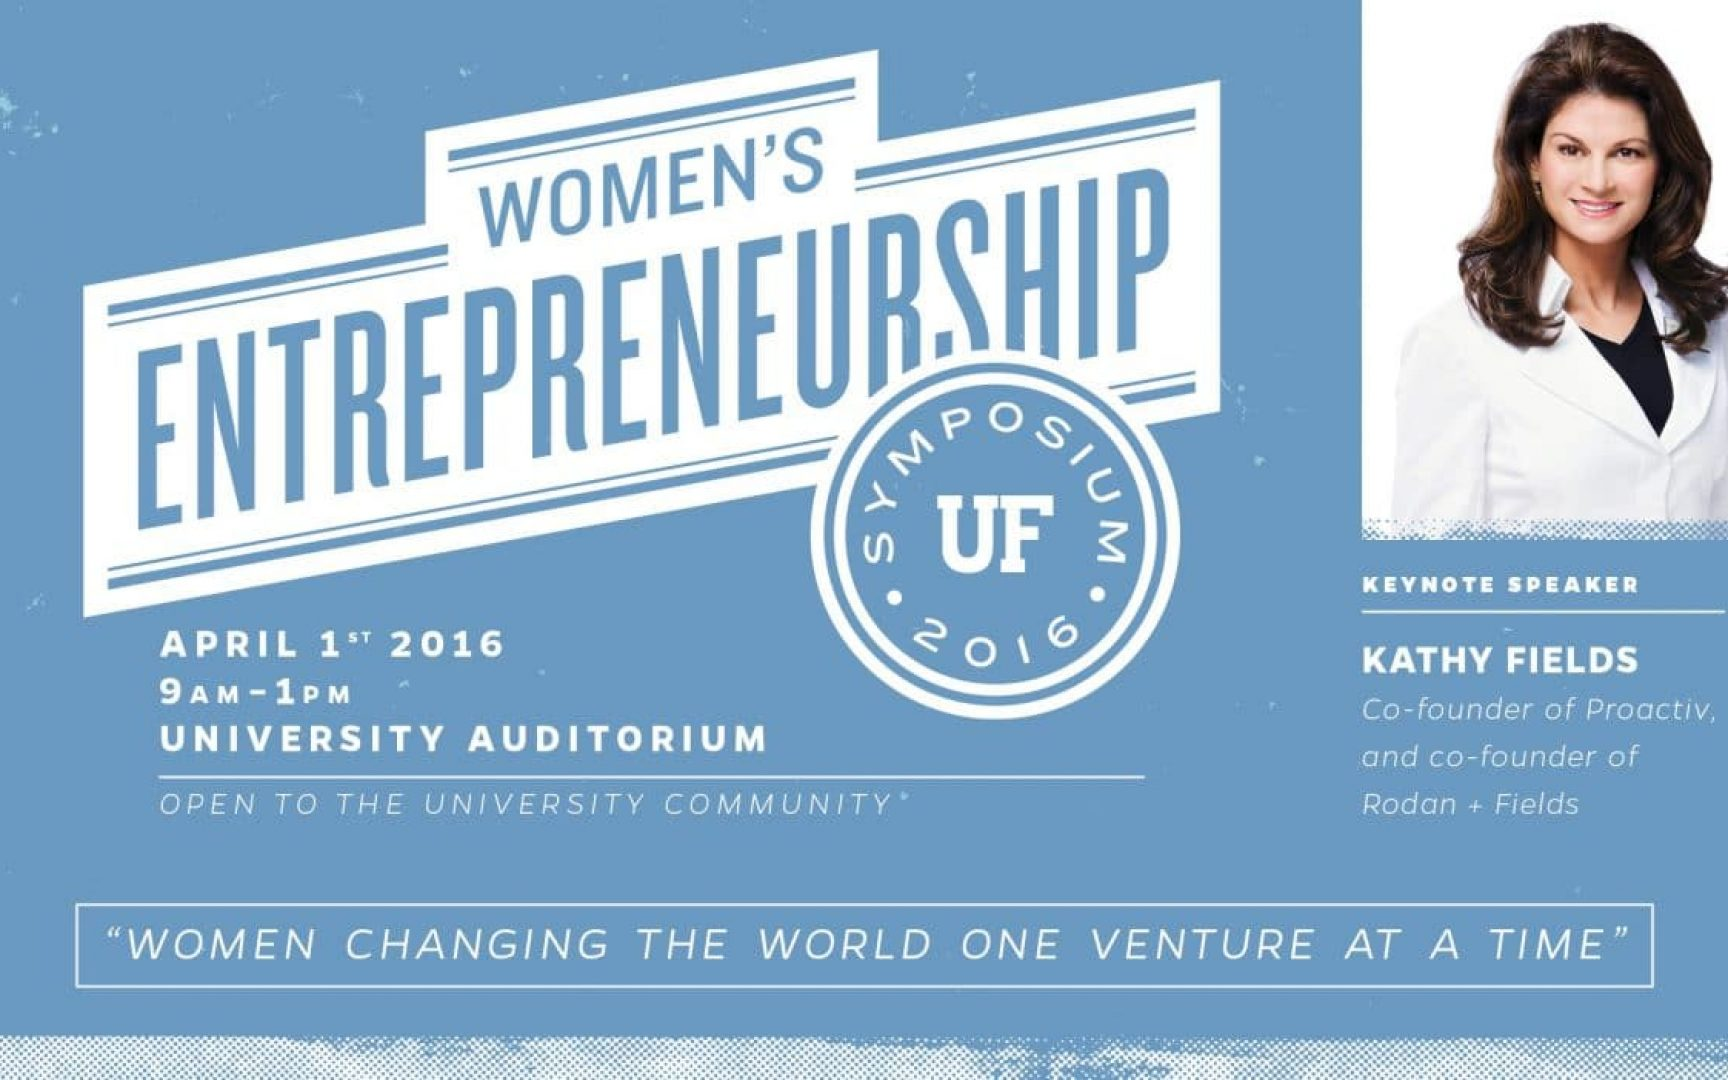 Women's Entrepreneurship Symposium 2016